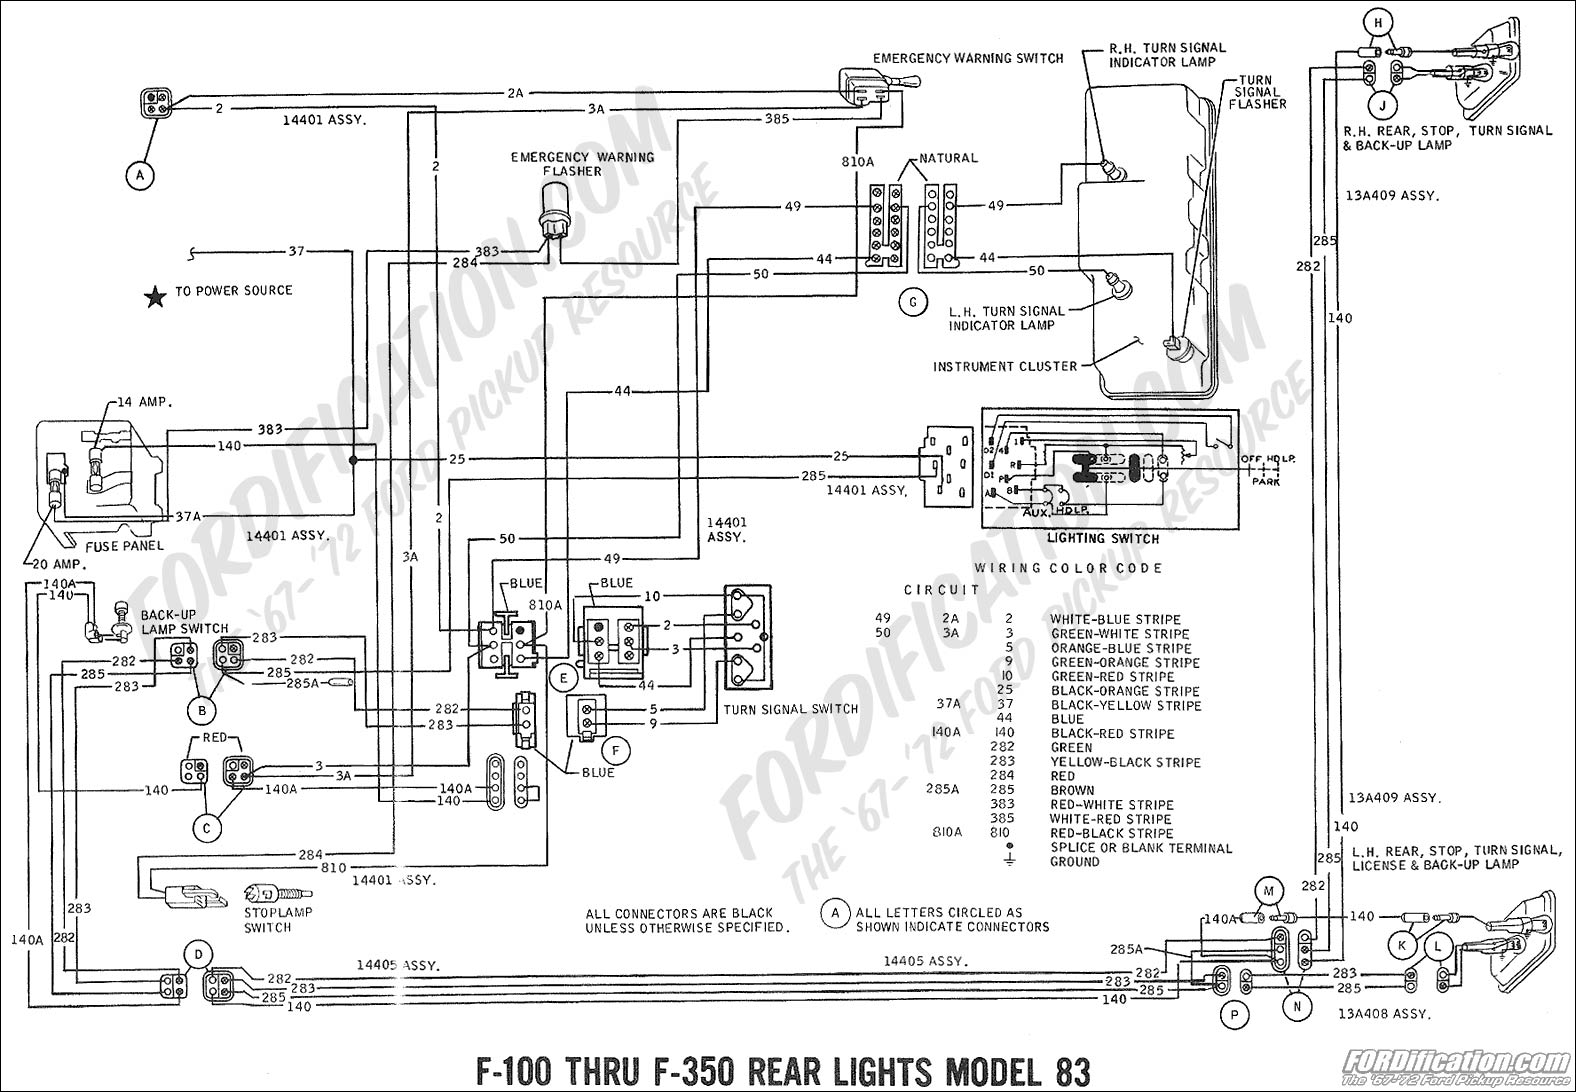 1983 Ford Mustang Alternator Wiring Diagram Free Picture For 1997 F350 Download Wiring83 302 Todays